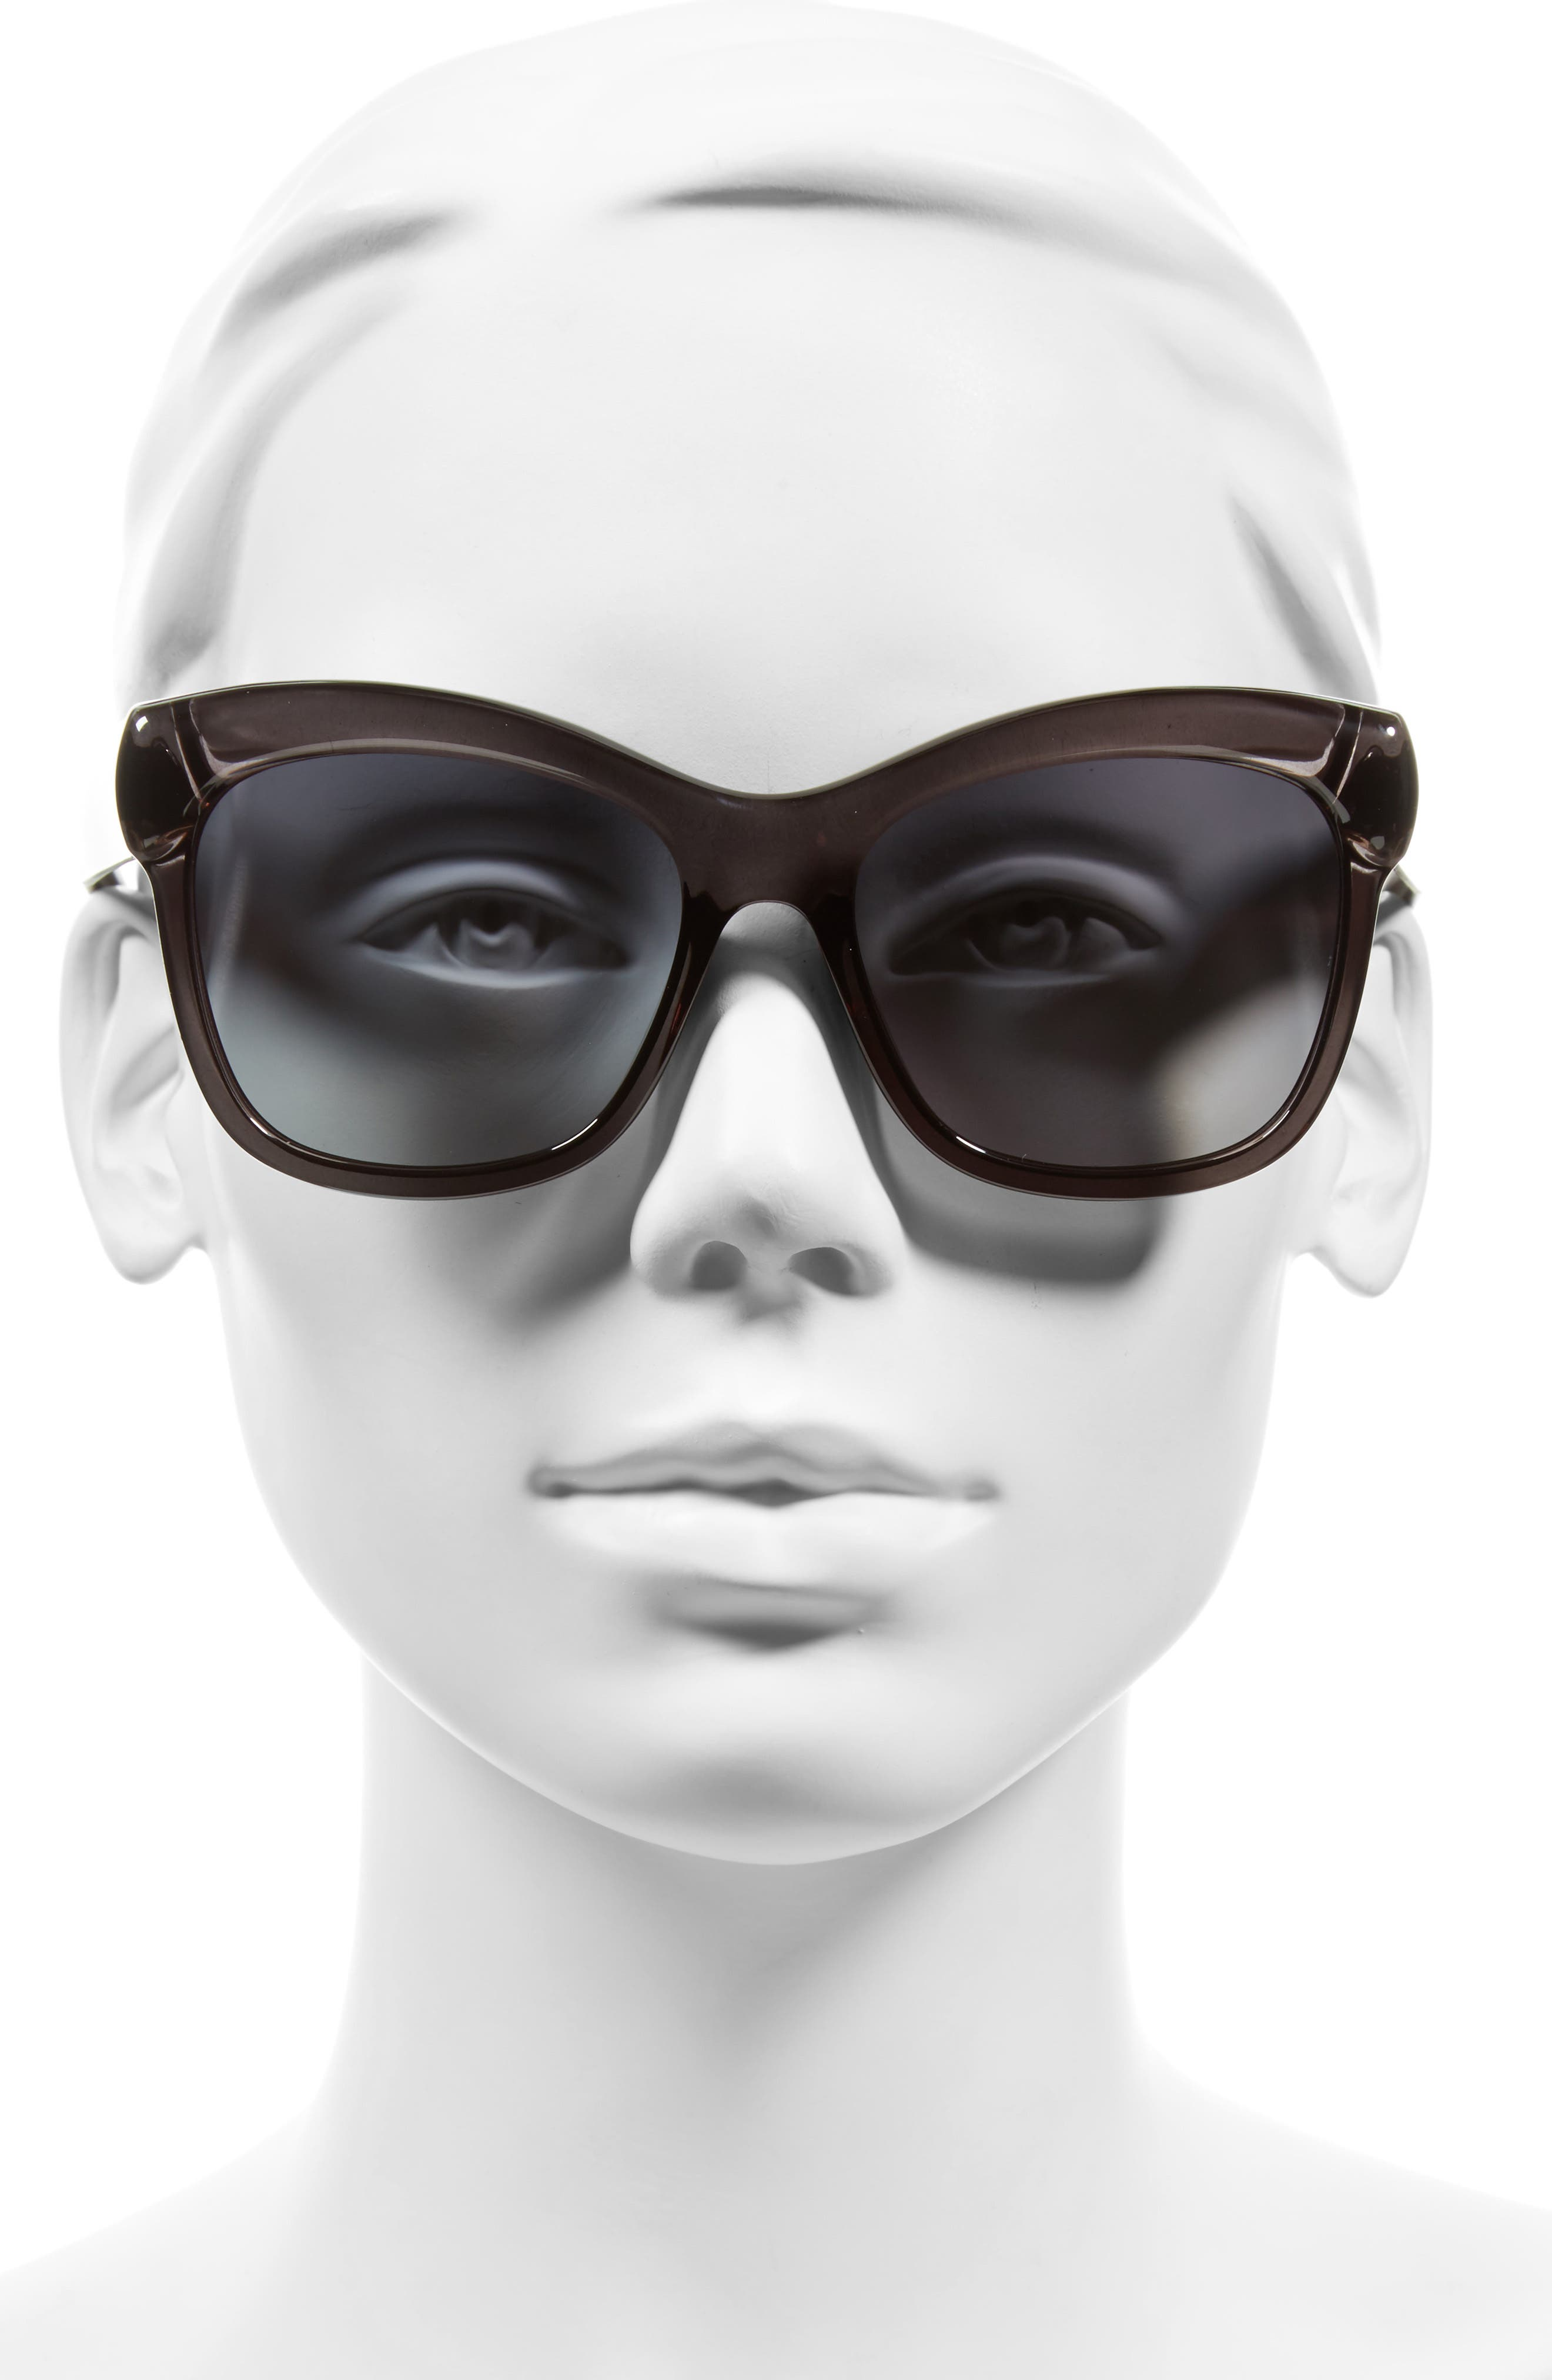 GIVENCHY,                             55mm Retro Sunglasses,                             Alternate thumbnail 2, color,                             020